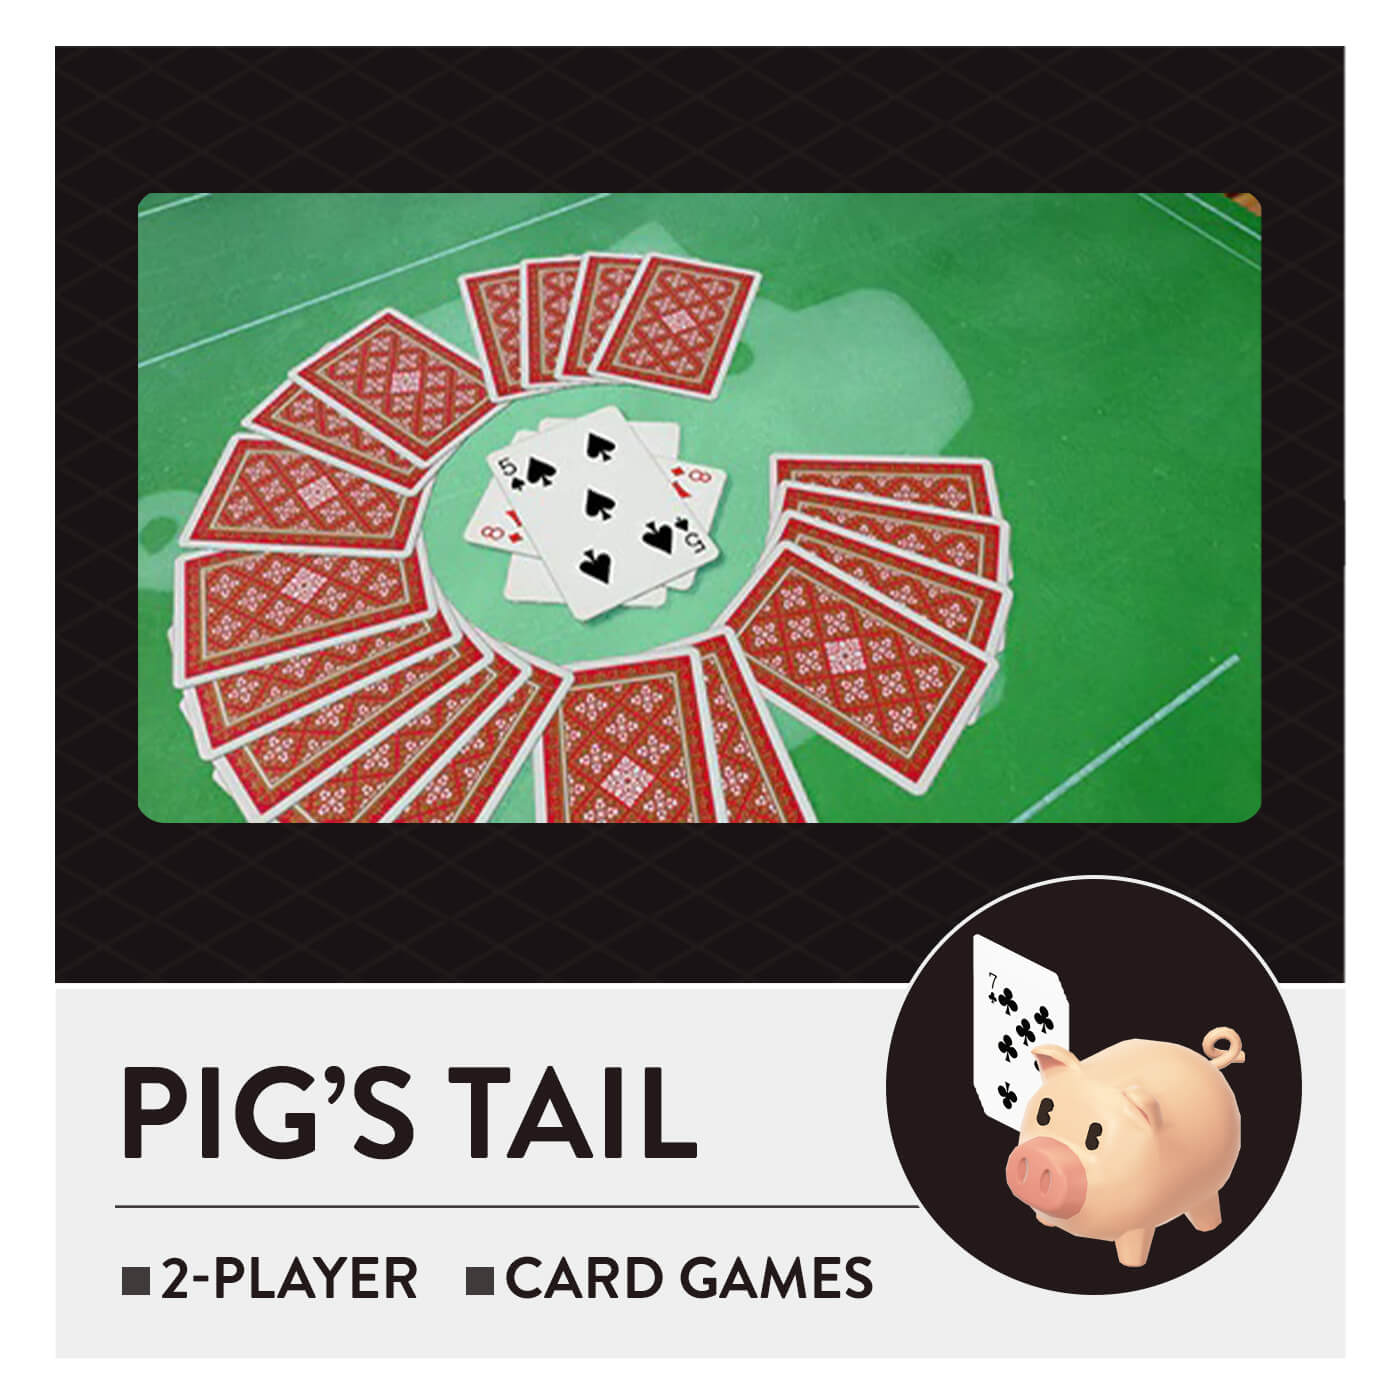 51 Worldwide Games - Pig's Tail